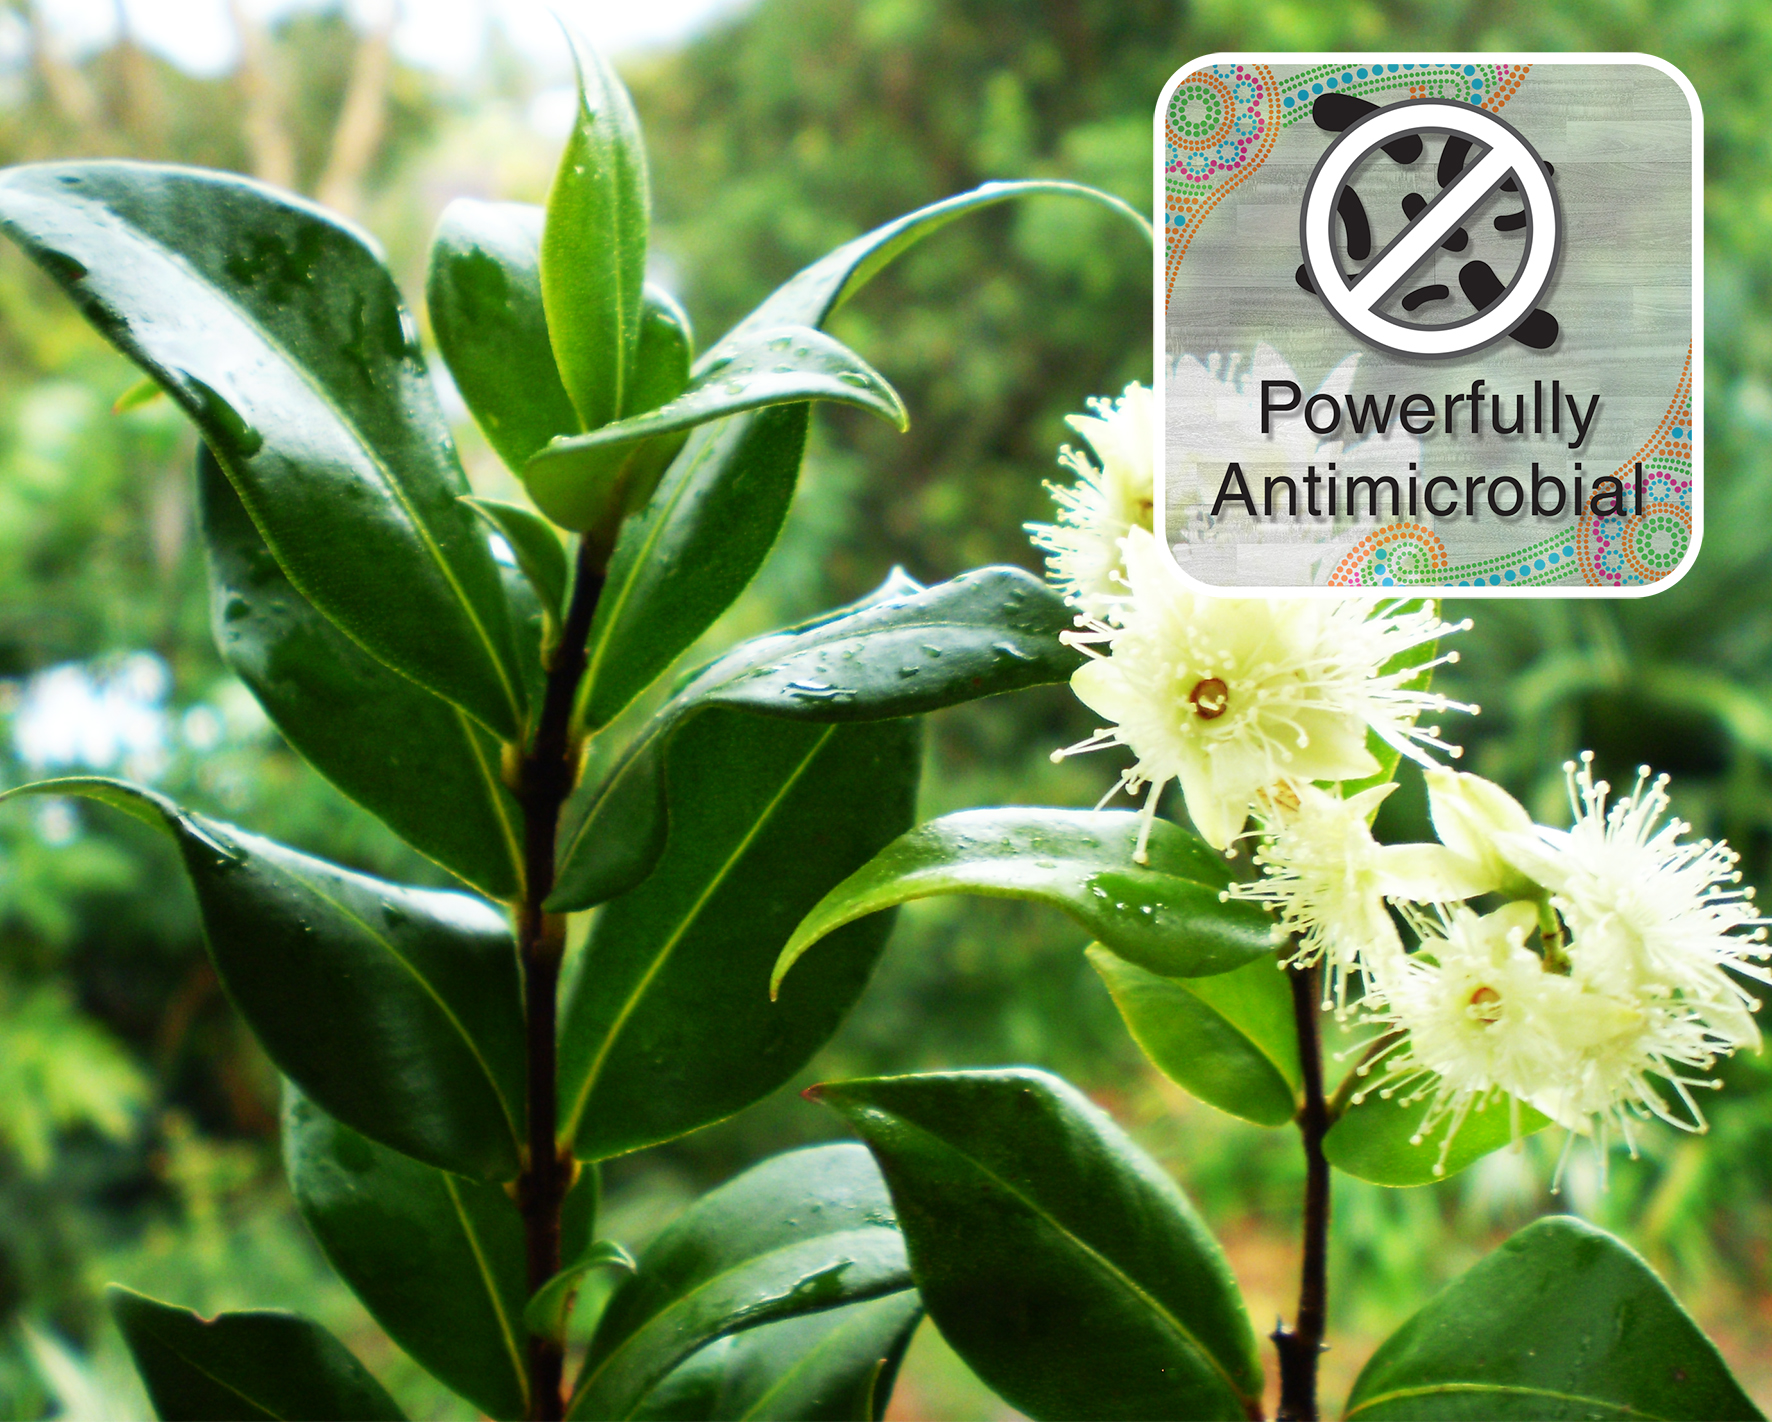 cinnamon myrtle Powerful Antimicrobial